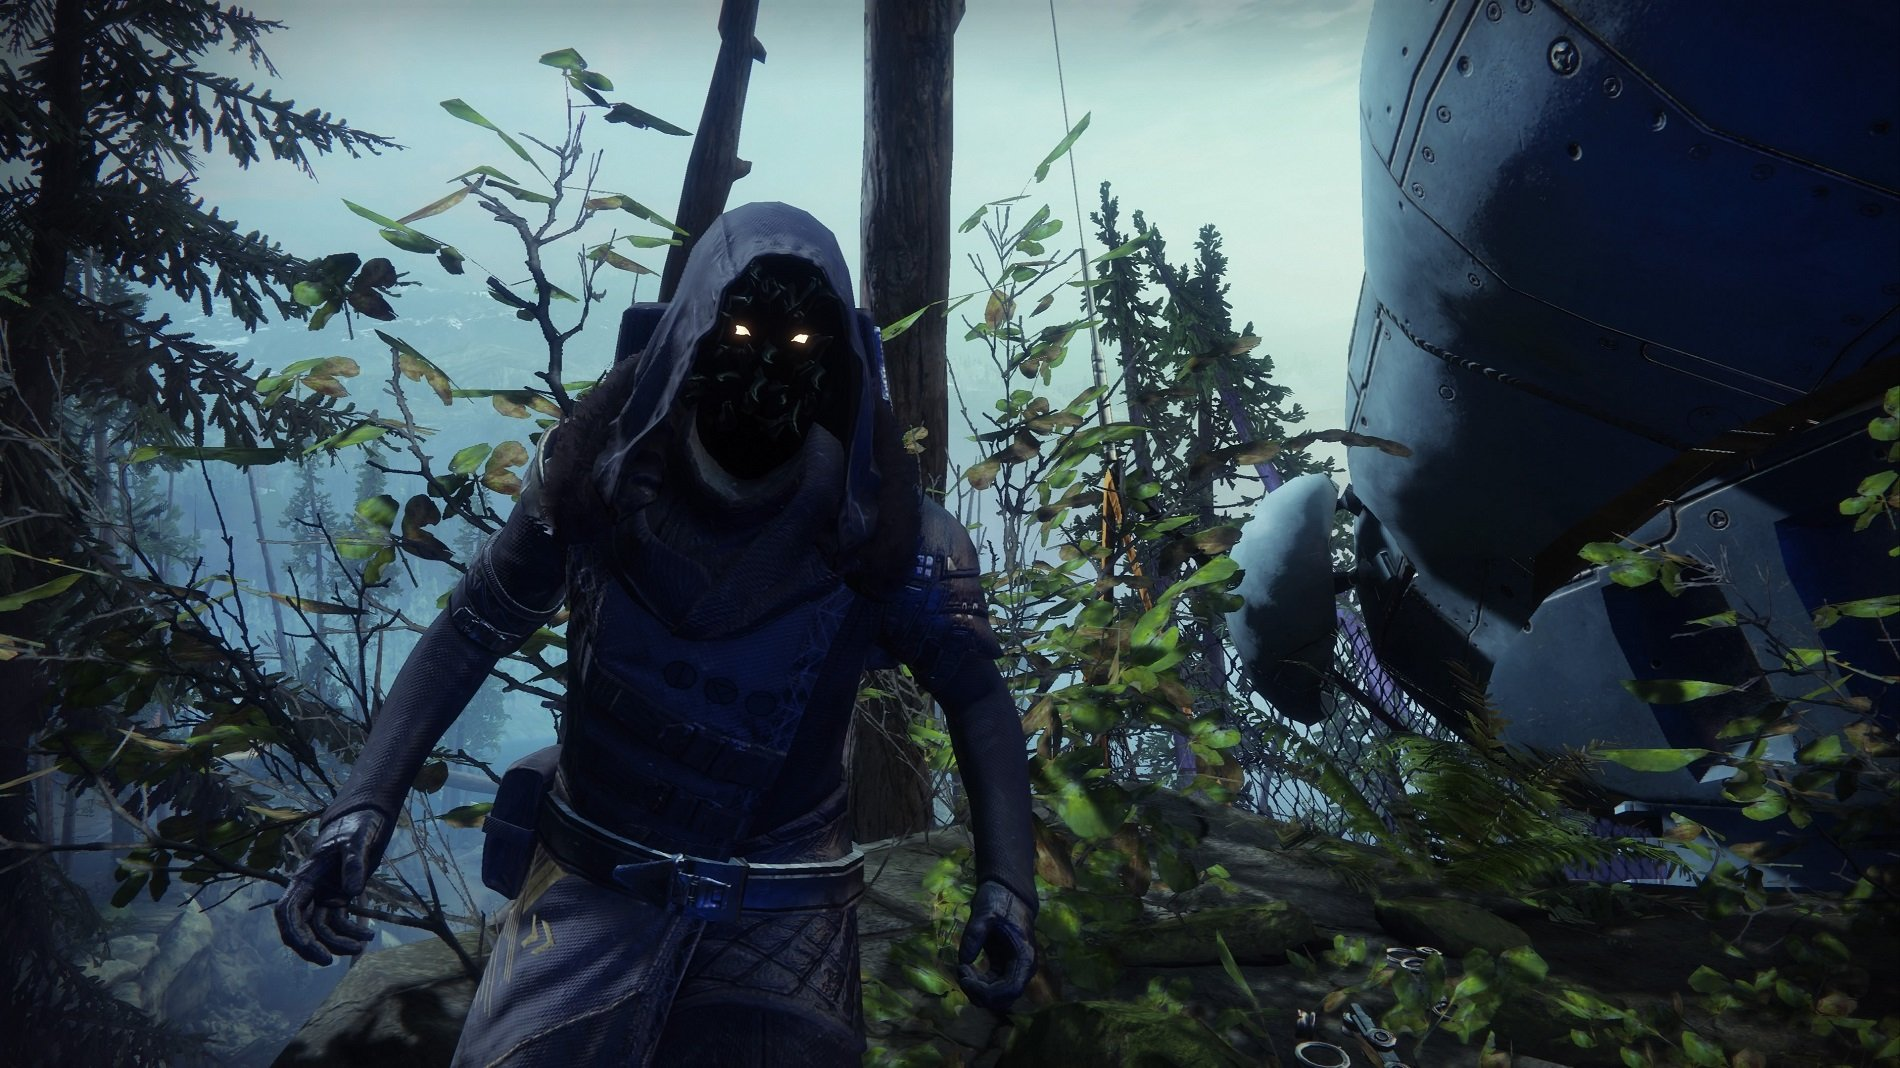 Where to find Xur in Destiny 2 - November 1, 2019